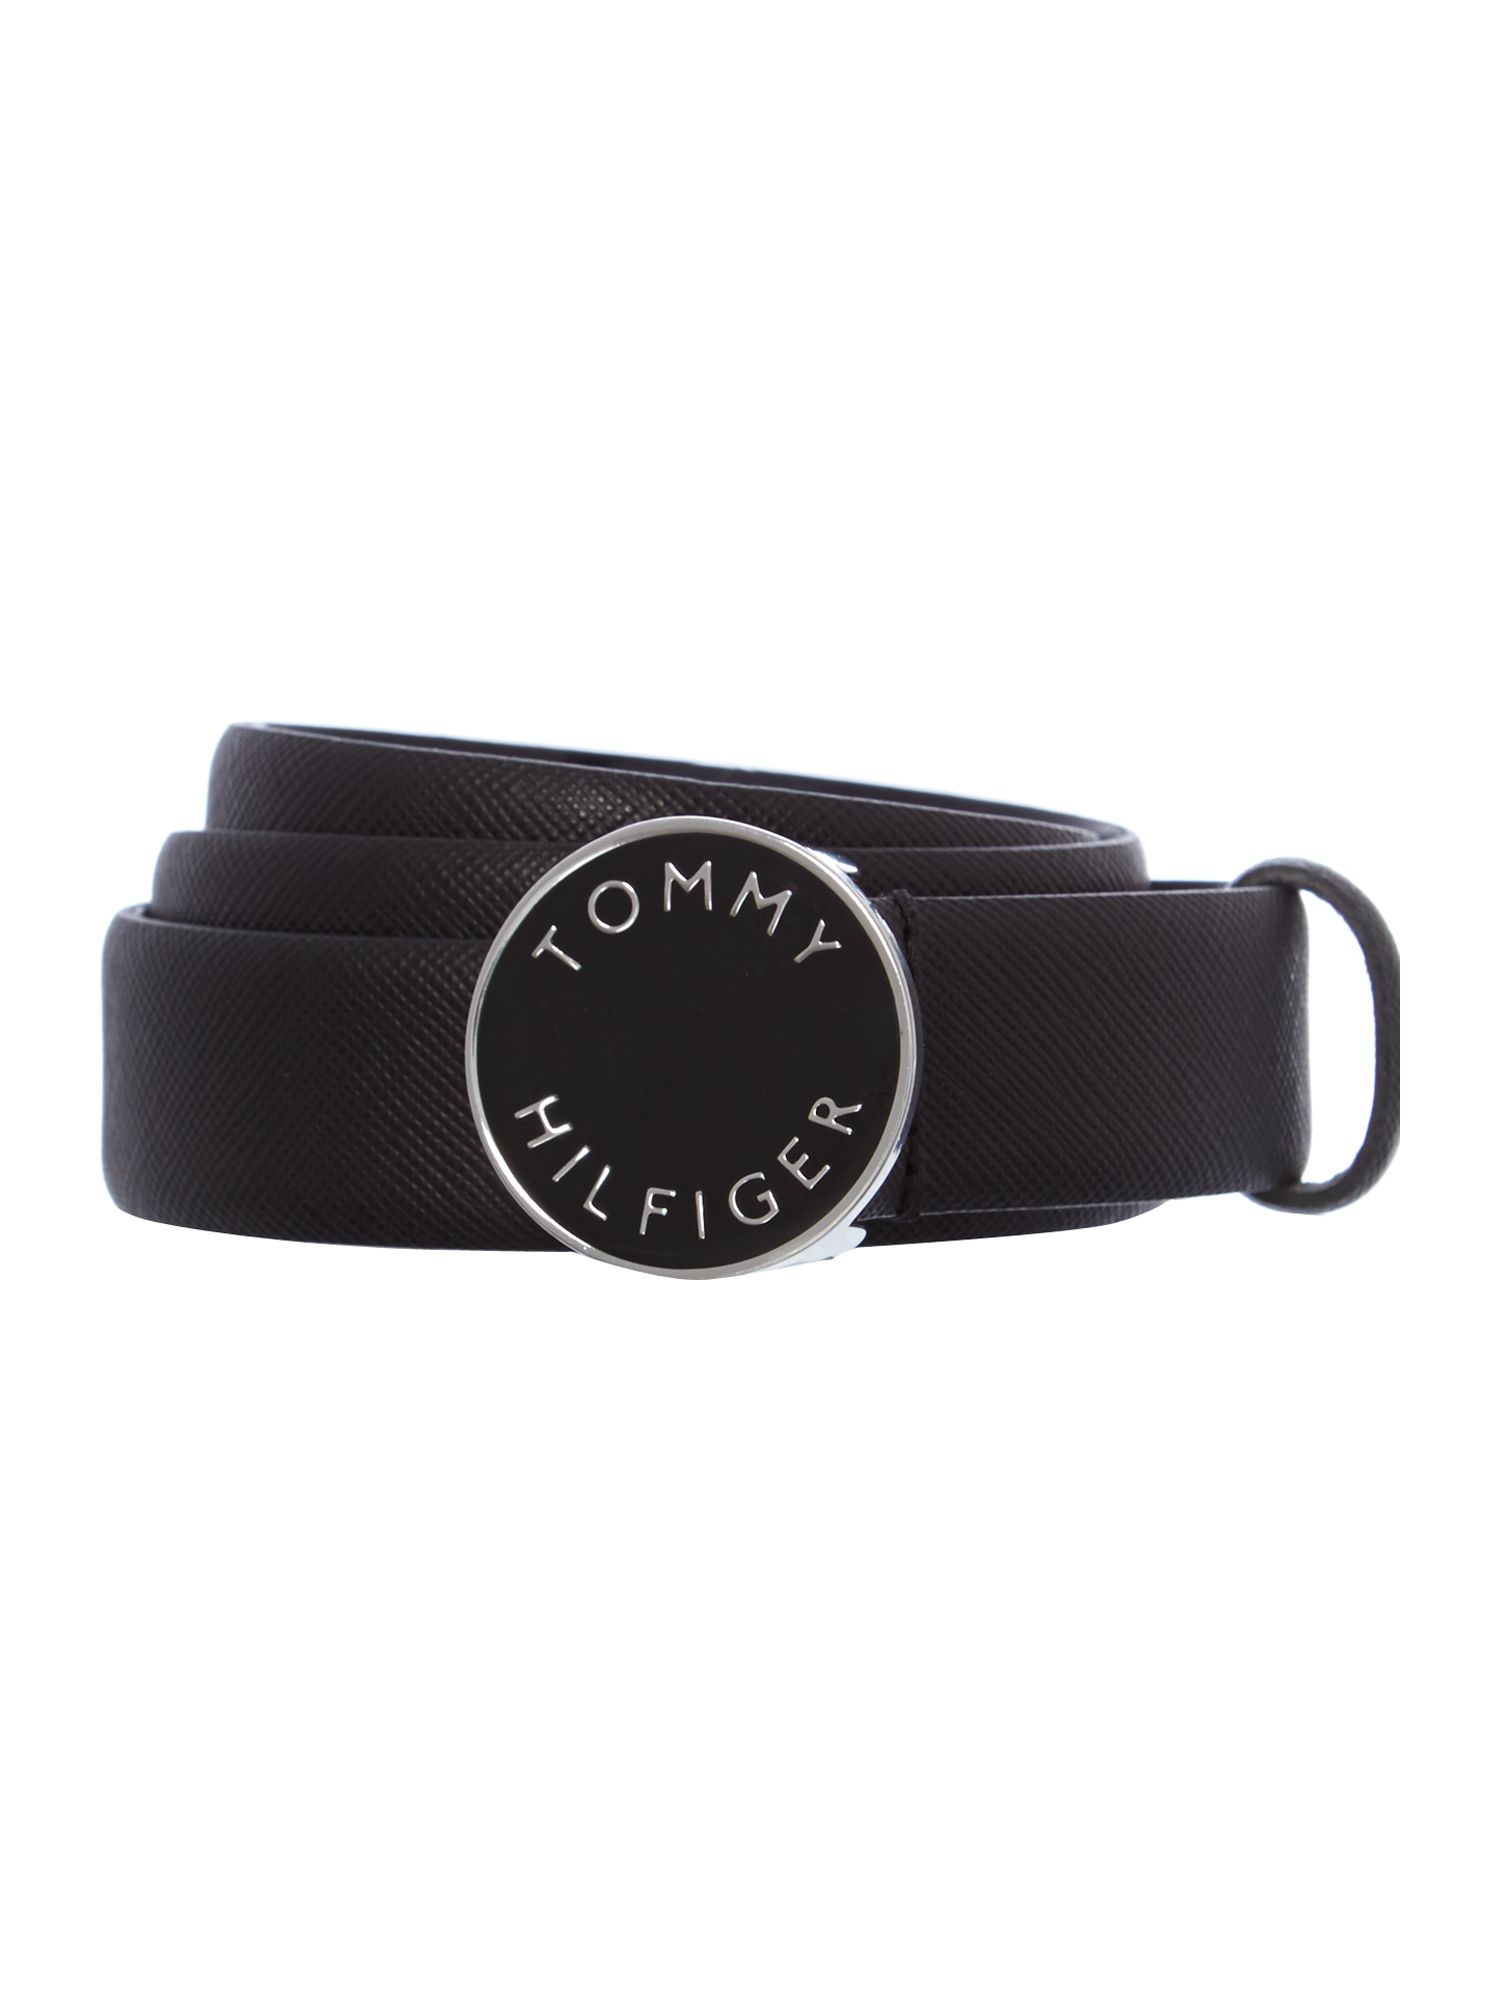 Shelby black logo belt